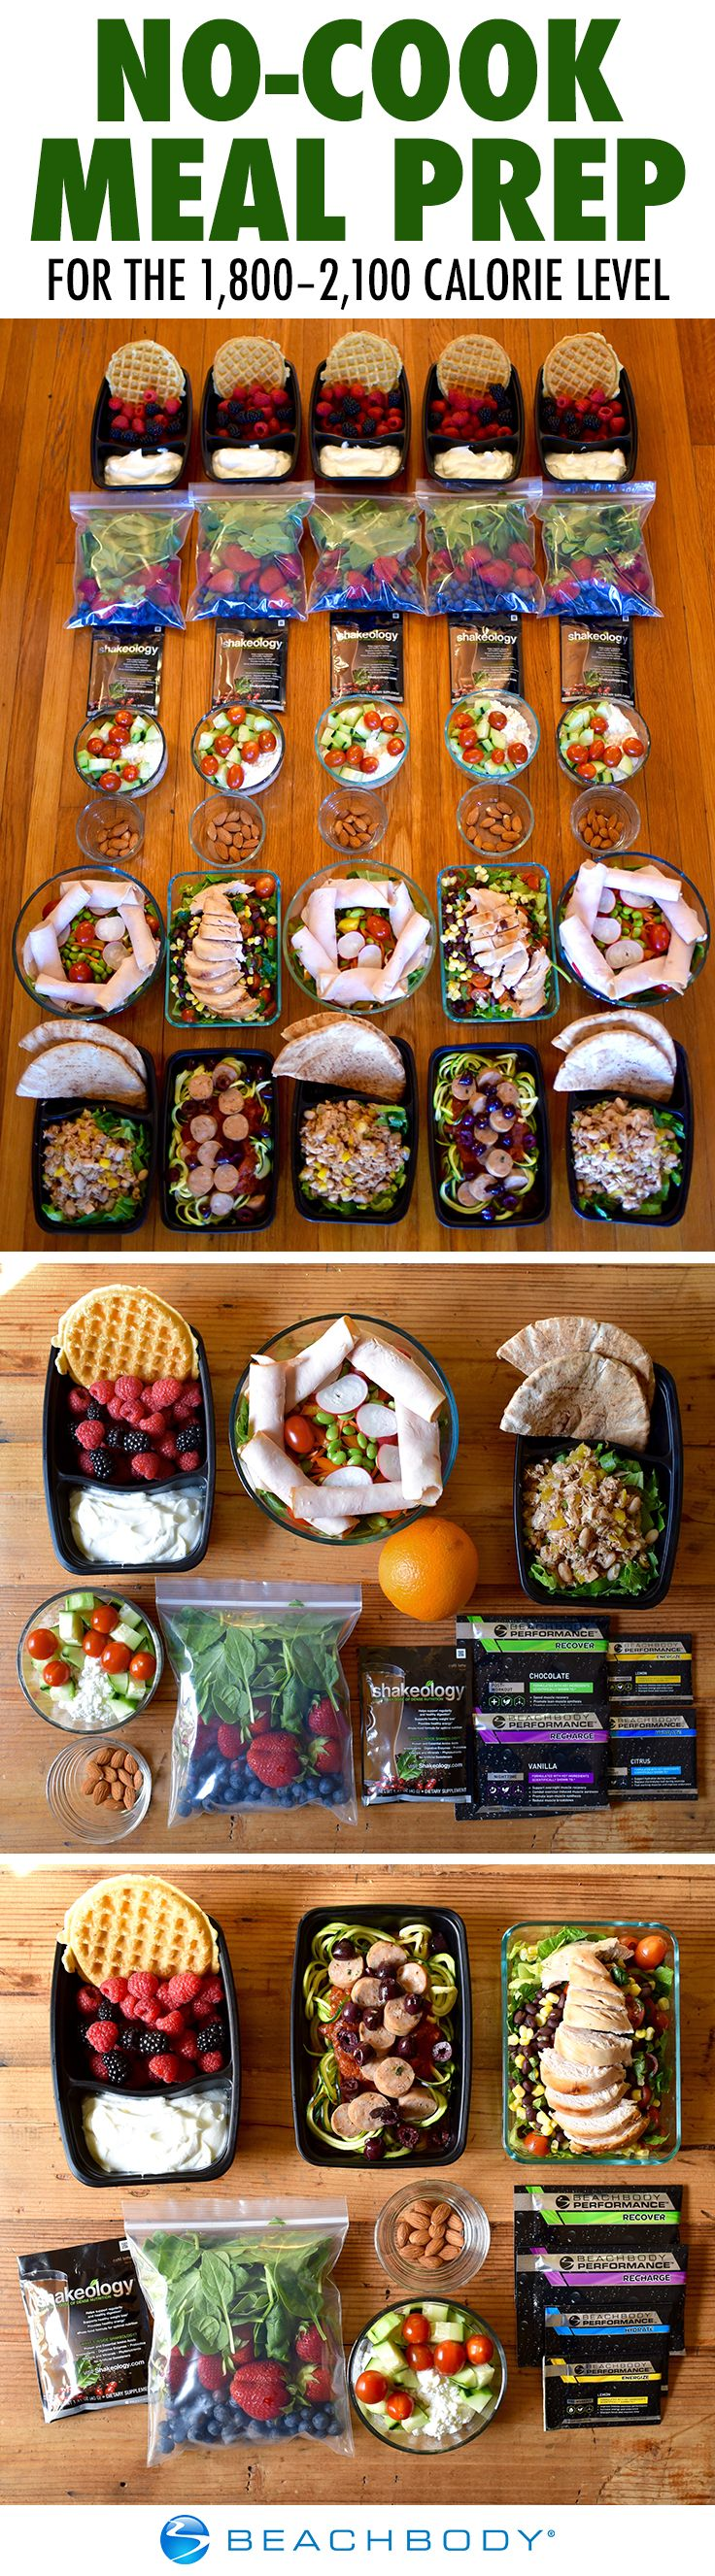 With this no-cook meal prep menu, you can enjoy a week of wholesome meals without ever turning on your oven. All it takes is a little chopping and stirring. Sound easy? We think so.